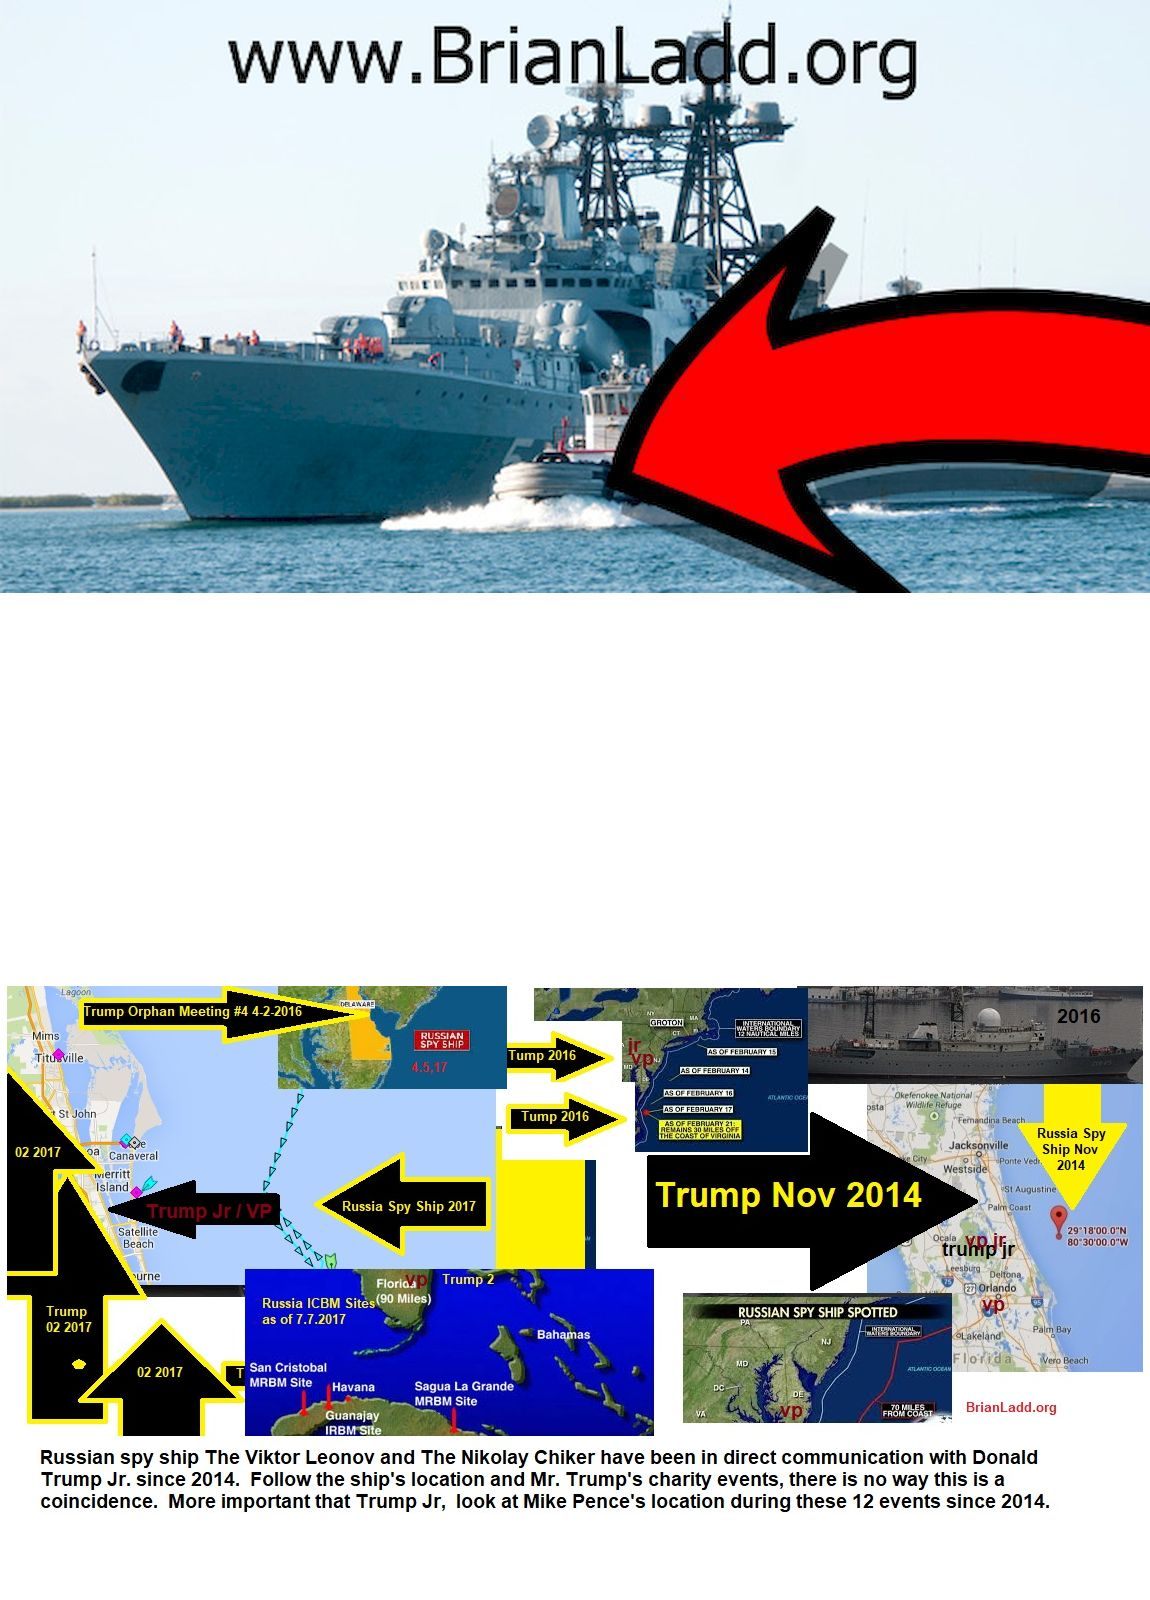 025russianship_russian_spy_ship_docked_in_havana_Donald_Trump_Jr_Russian_Spy_Sub_and_Ship_2012_to_.jpg